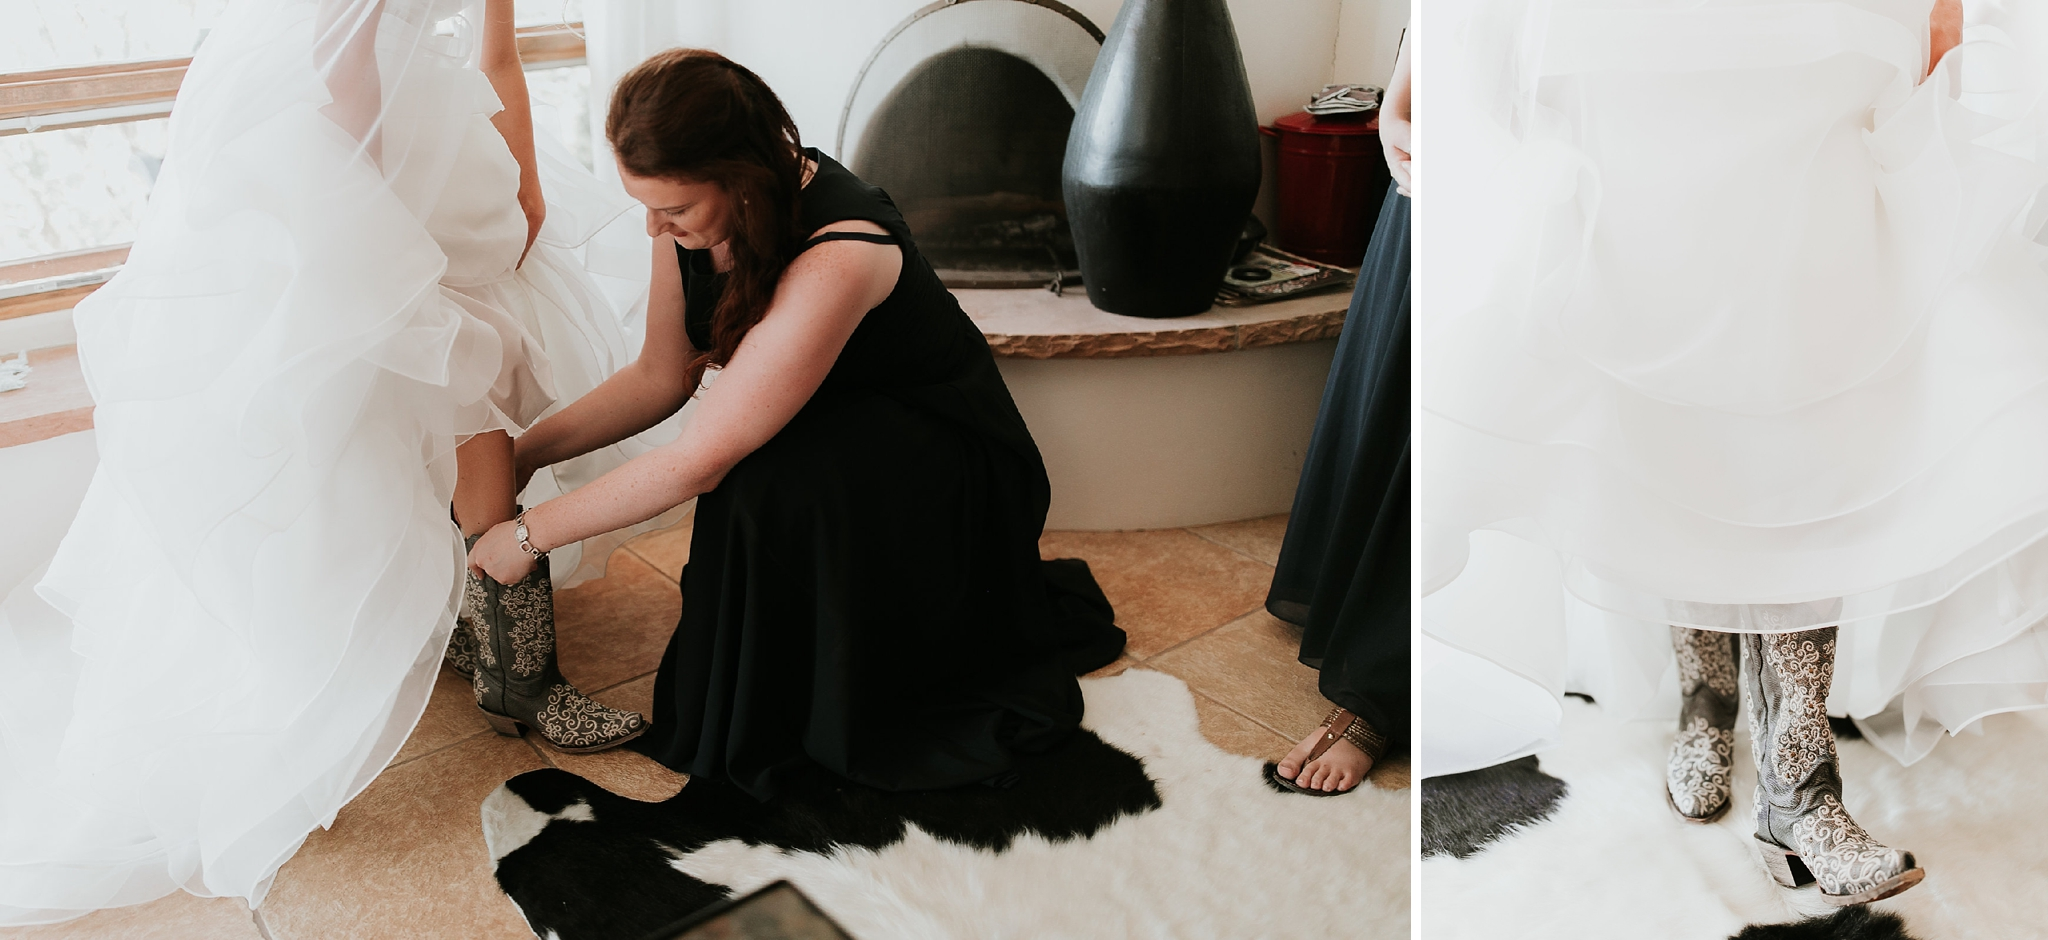 Alicia+lucia+photography+-+albuquerque+wedding+photographer+-+santa+fe+wedding+photography+-+new+mexico+wedding+photographer+-+new+mexico+wedding+-+new+mexico+wedding+-+colorado+wedding+-+bridal+shoes+-+bridal+inspo_0020.jpg